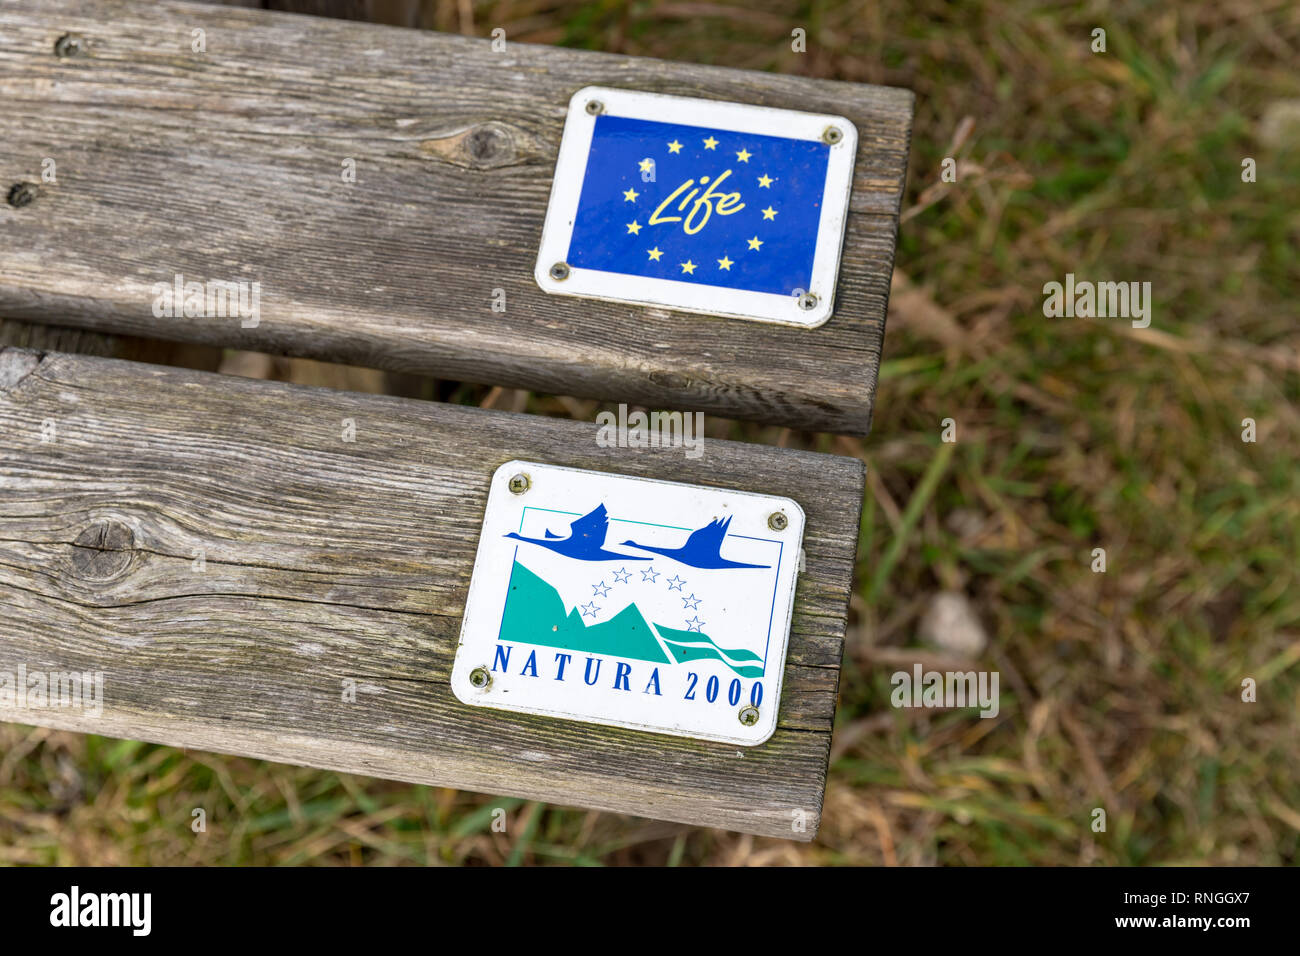 EU LIFE programme and Natura 2000, signs on boards of a wooden bench - Stock Image